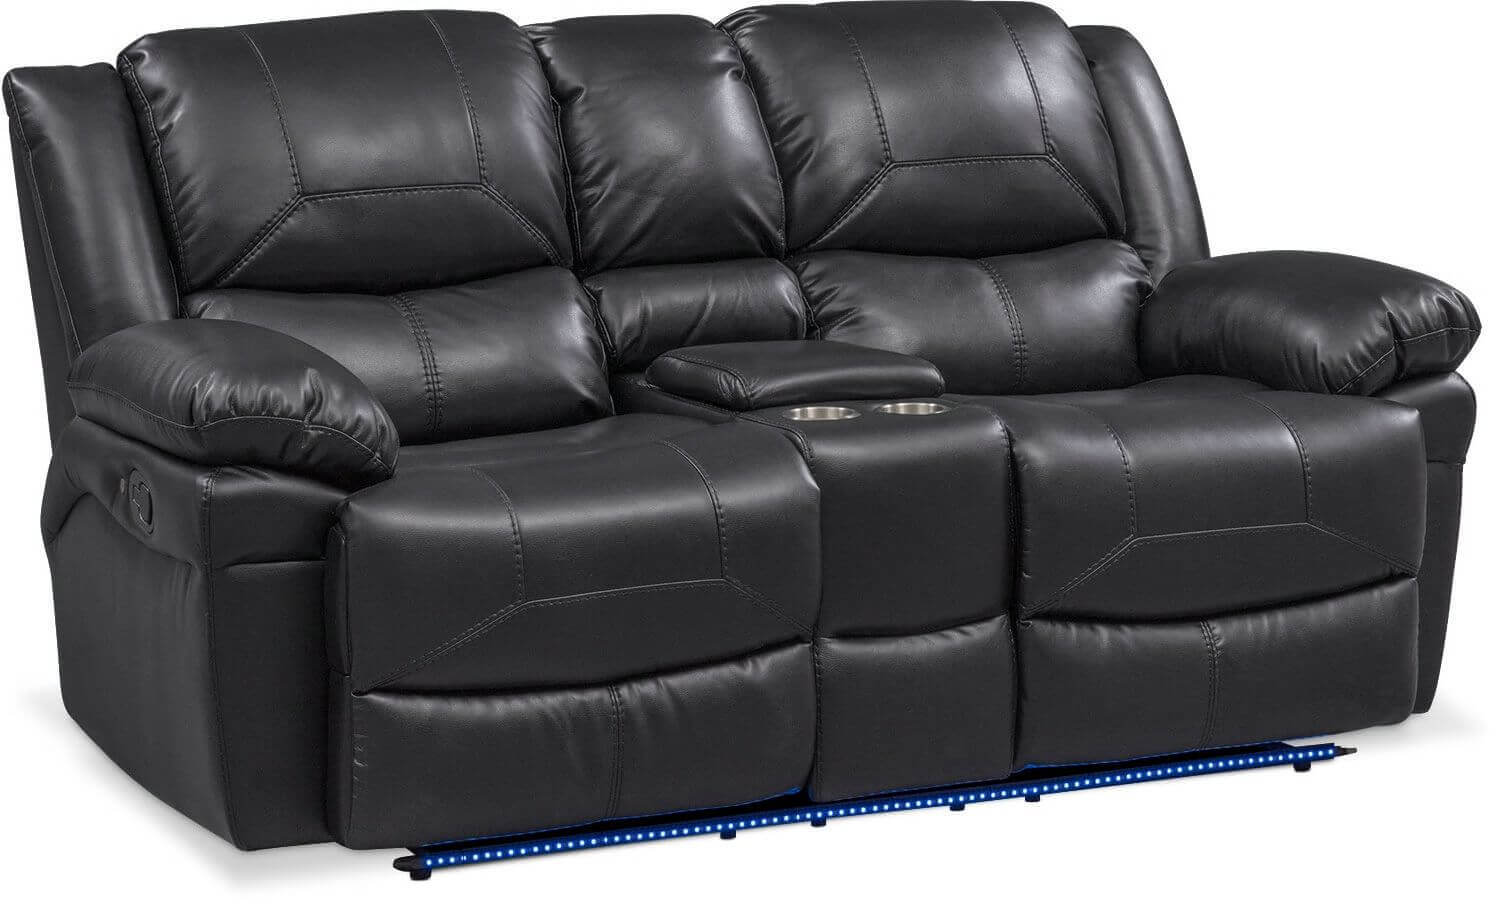 Tron Black Power Reclining Set With Led Lights Living Room Furniture